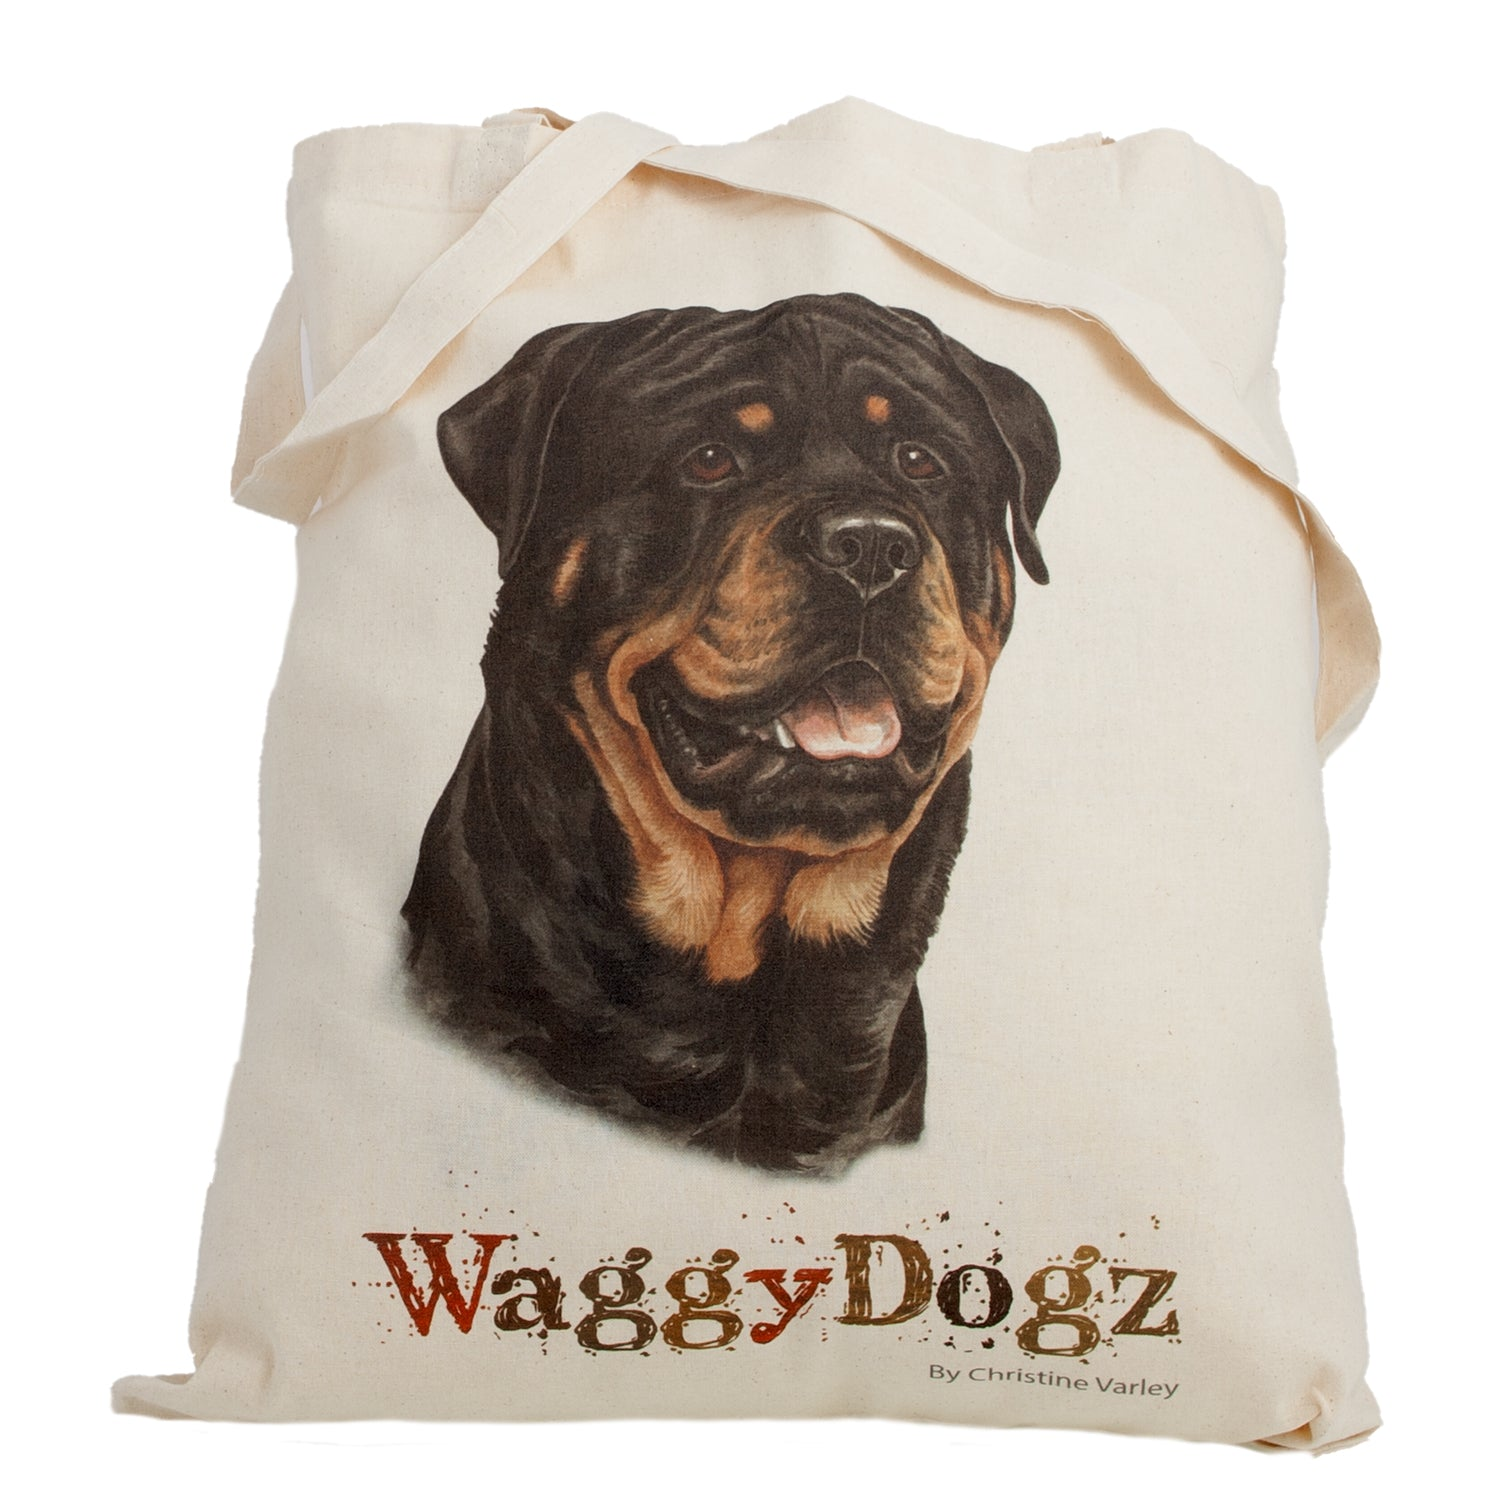 Dog Lover Gifts available at Dog Krazy Gifts. Rottweiler Tote Bag, part of our Christine Varley collection – available at www.dogkrazygifts.co.uk